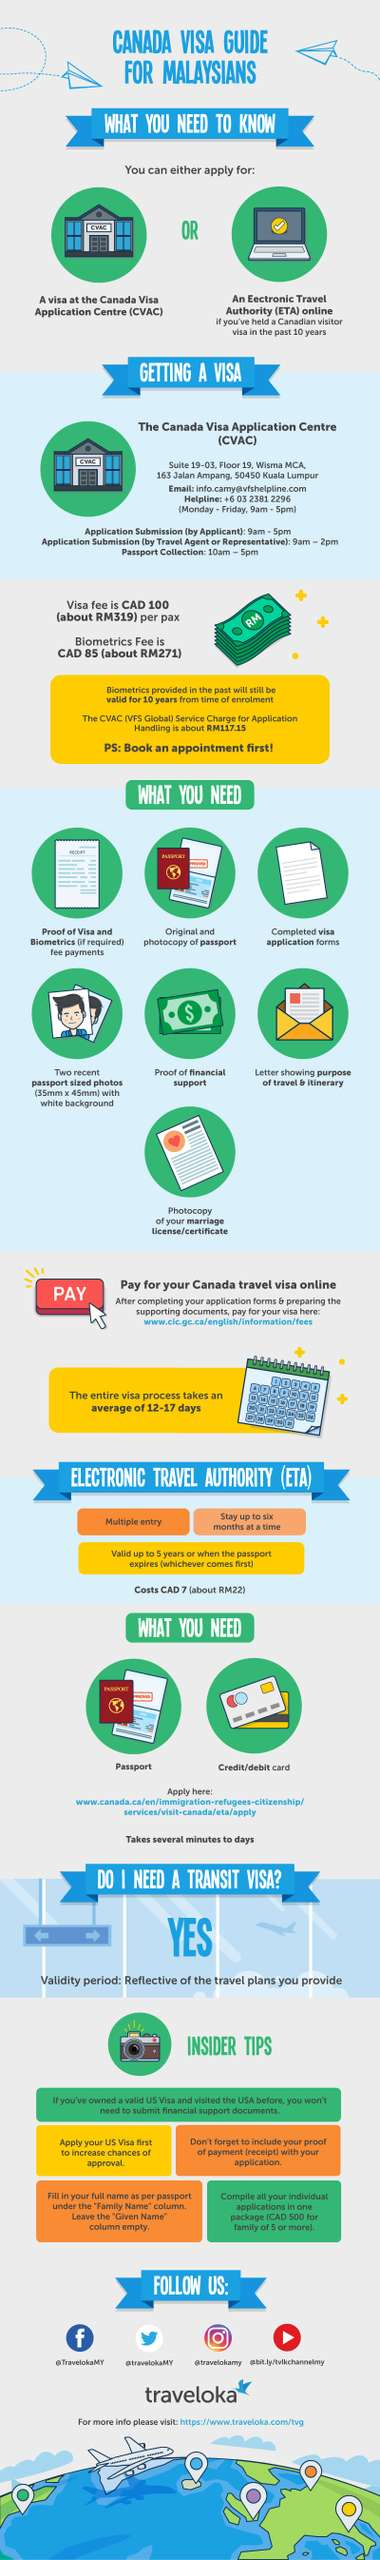 Canada Visa Guide for Malaysians Infographic